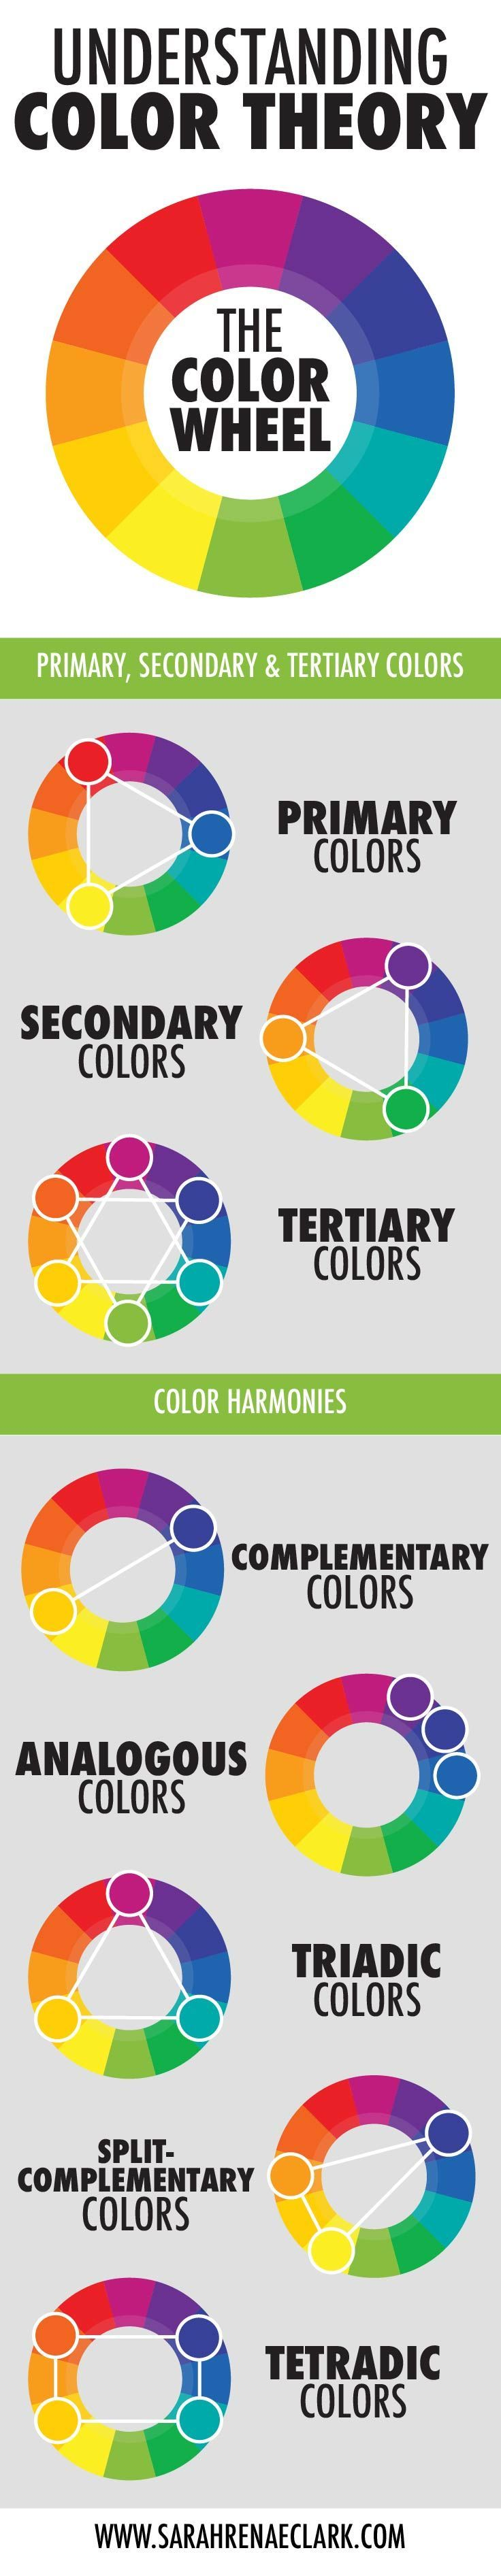 Psychology Learn About The Color Wheel Primary Colors Secondary Tertiary A